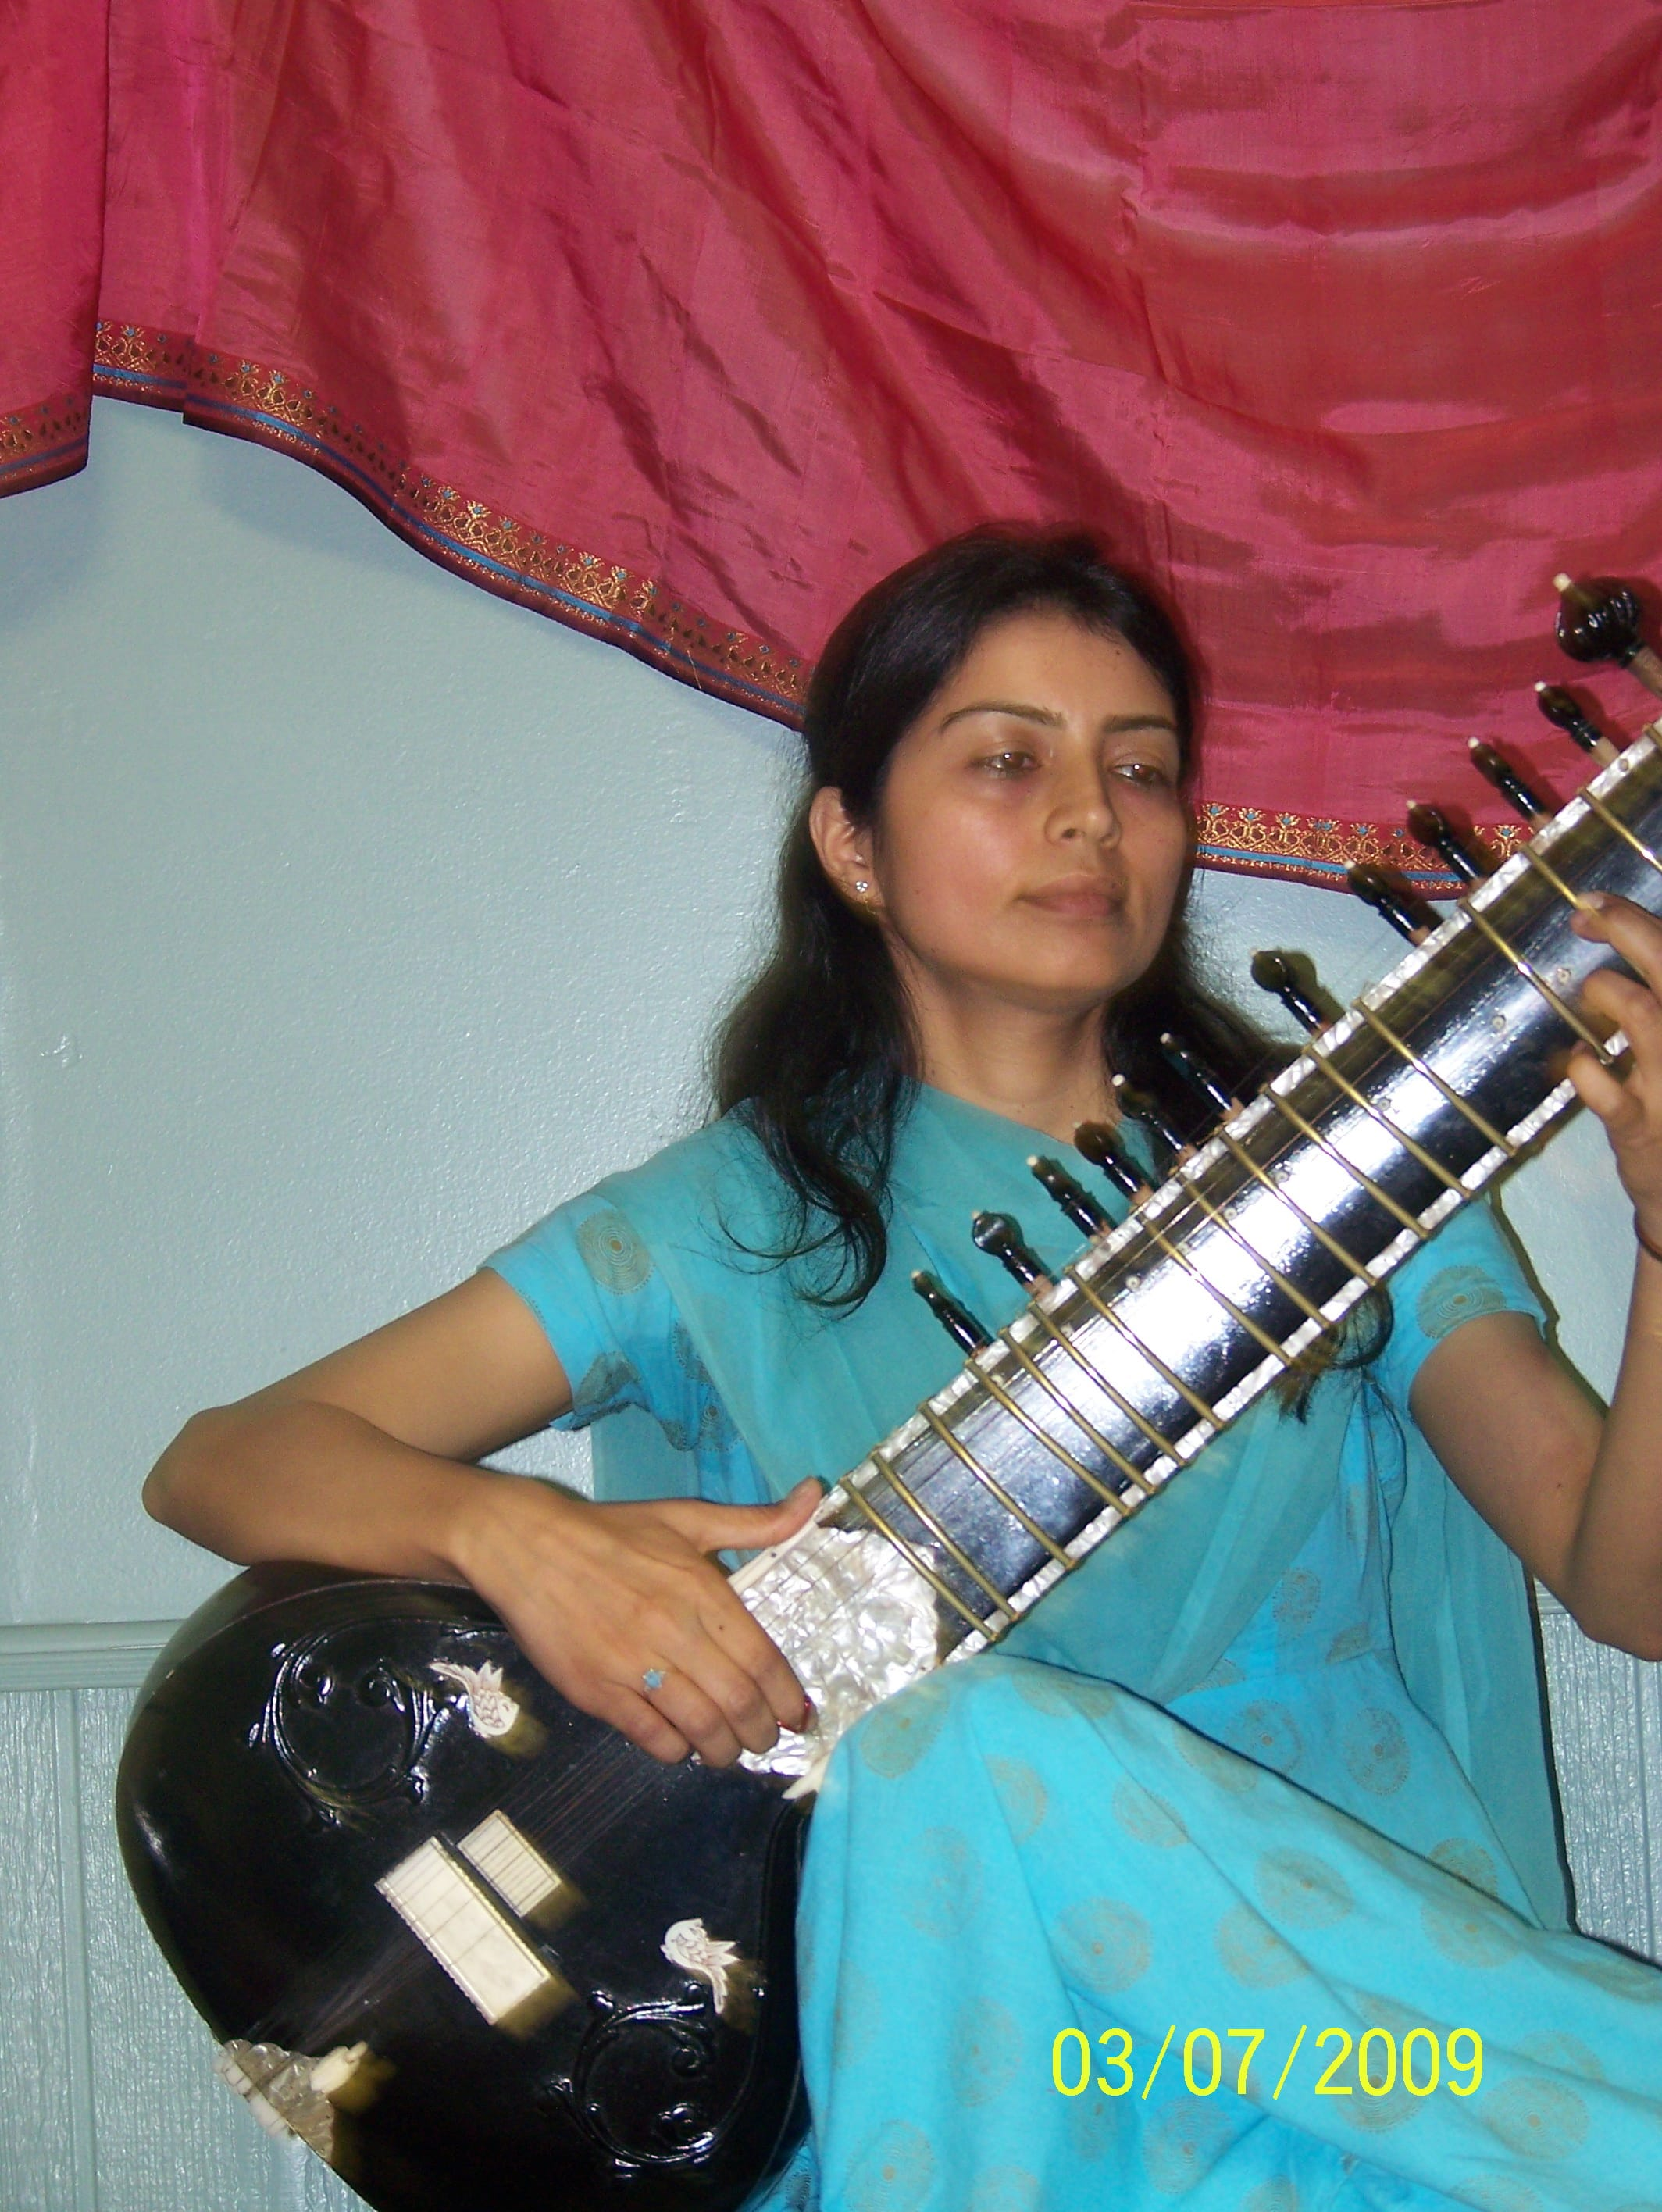 Seema at Sitar - Sahaja Yoga Special Class with Tabla & Sitar performance 2009